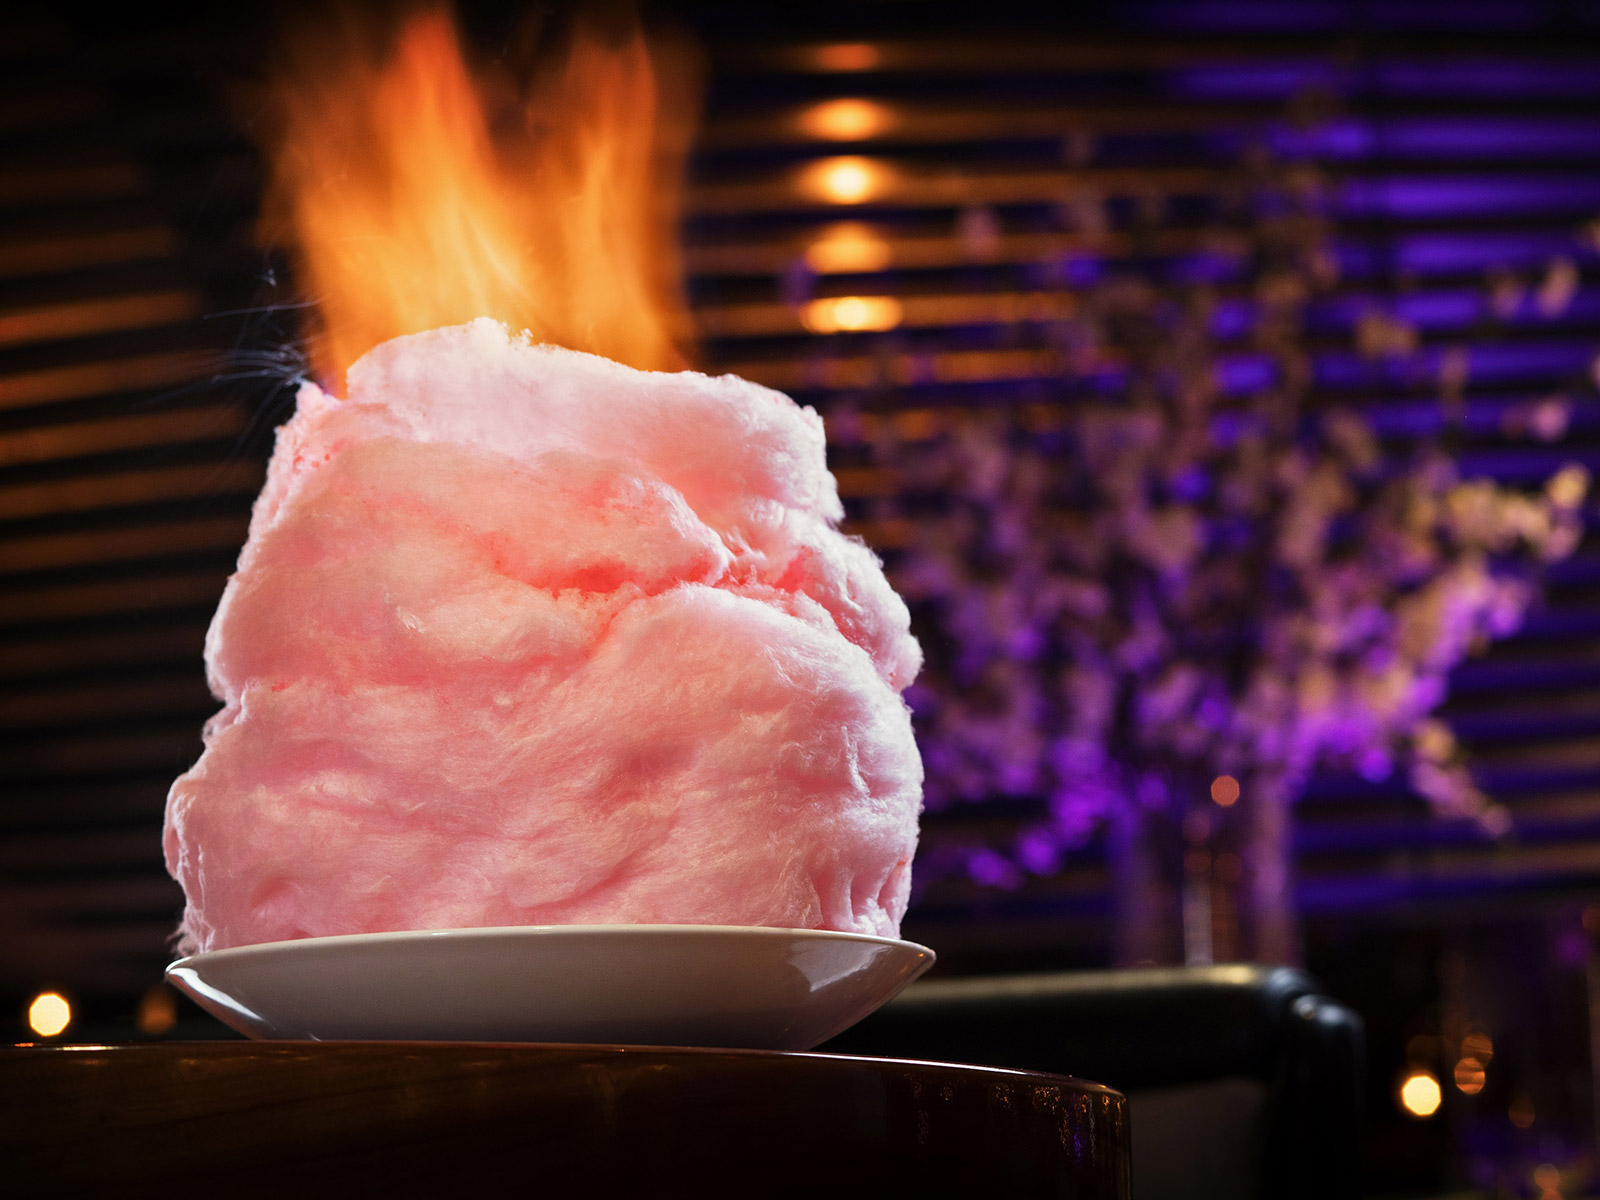 torch flaming cotton candy